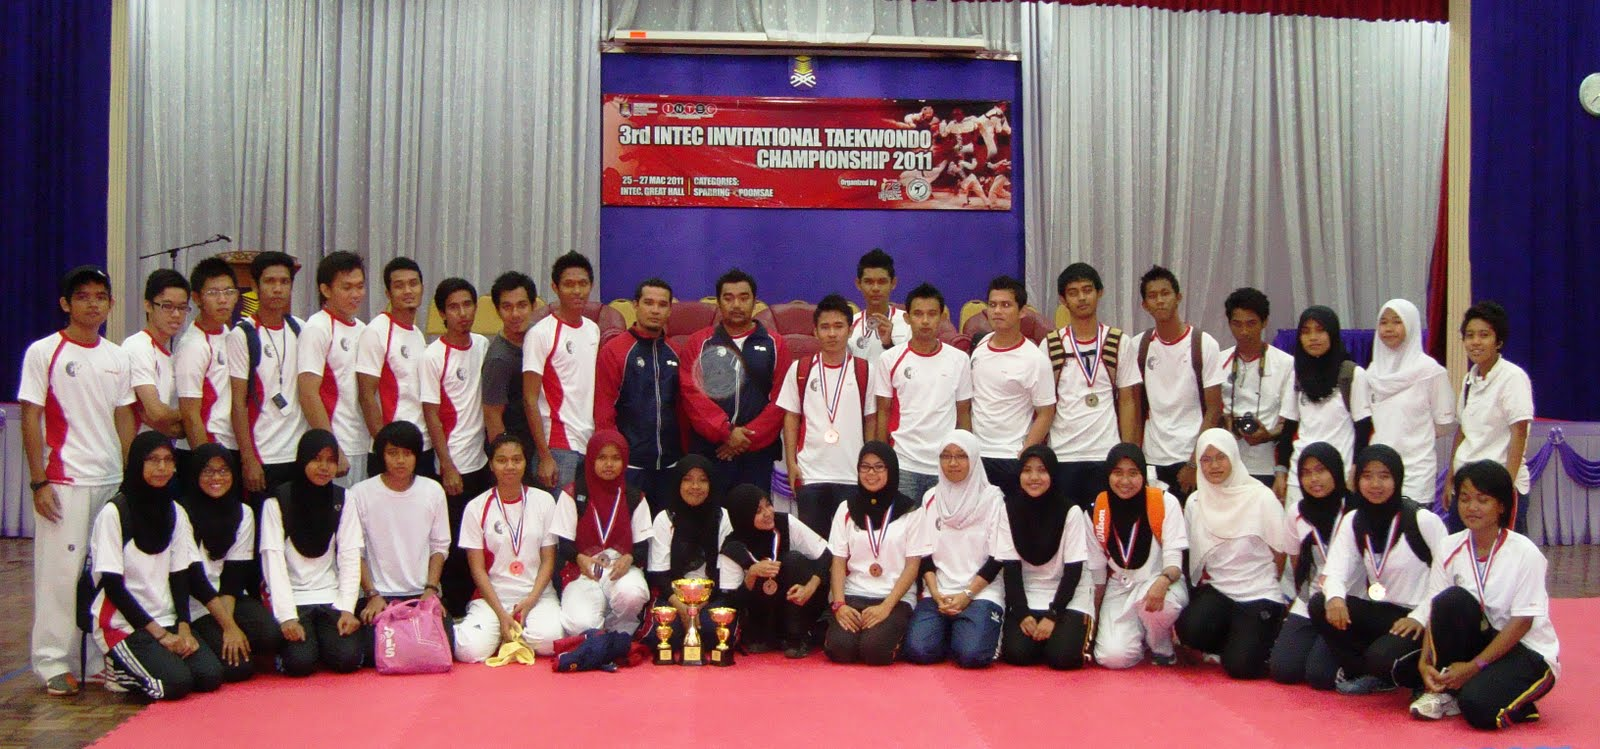 JUARA KATEGORI SPARRING AMATEUR (MEN). --UiTM PAHANG. --3 GOLDS, 2 SILVERS